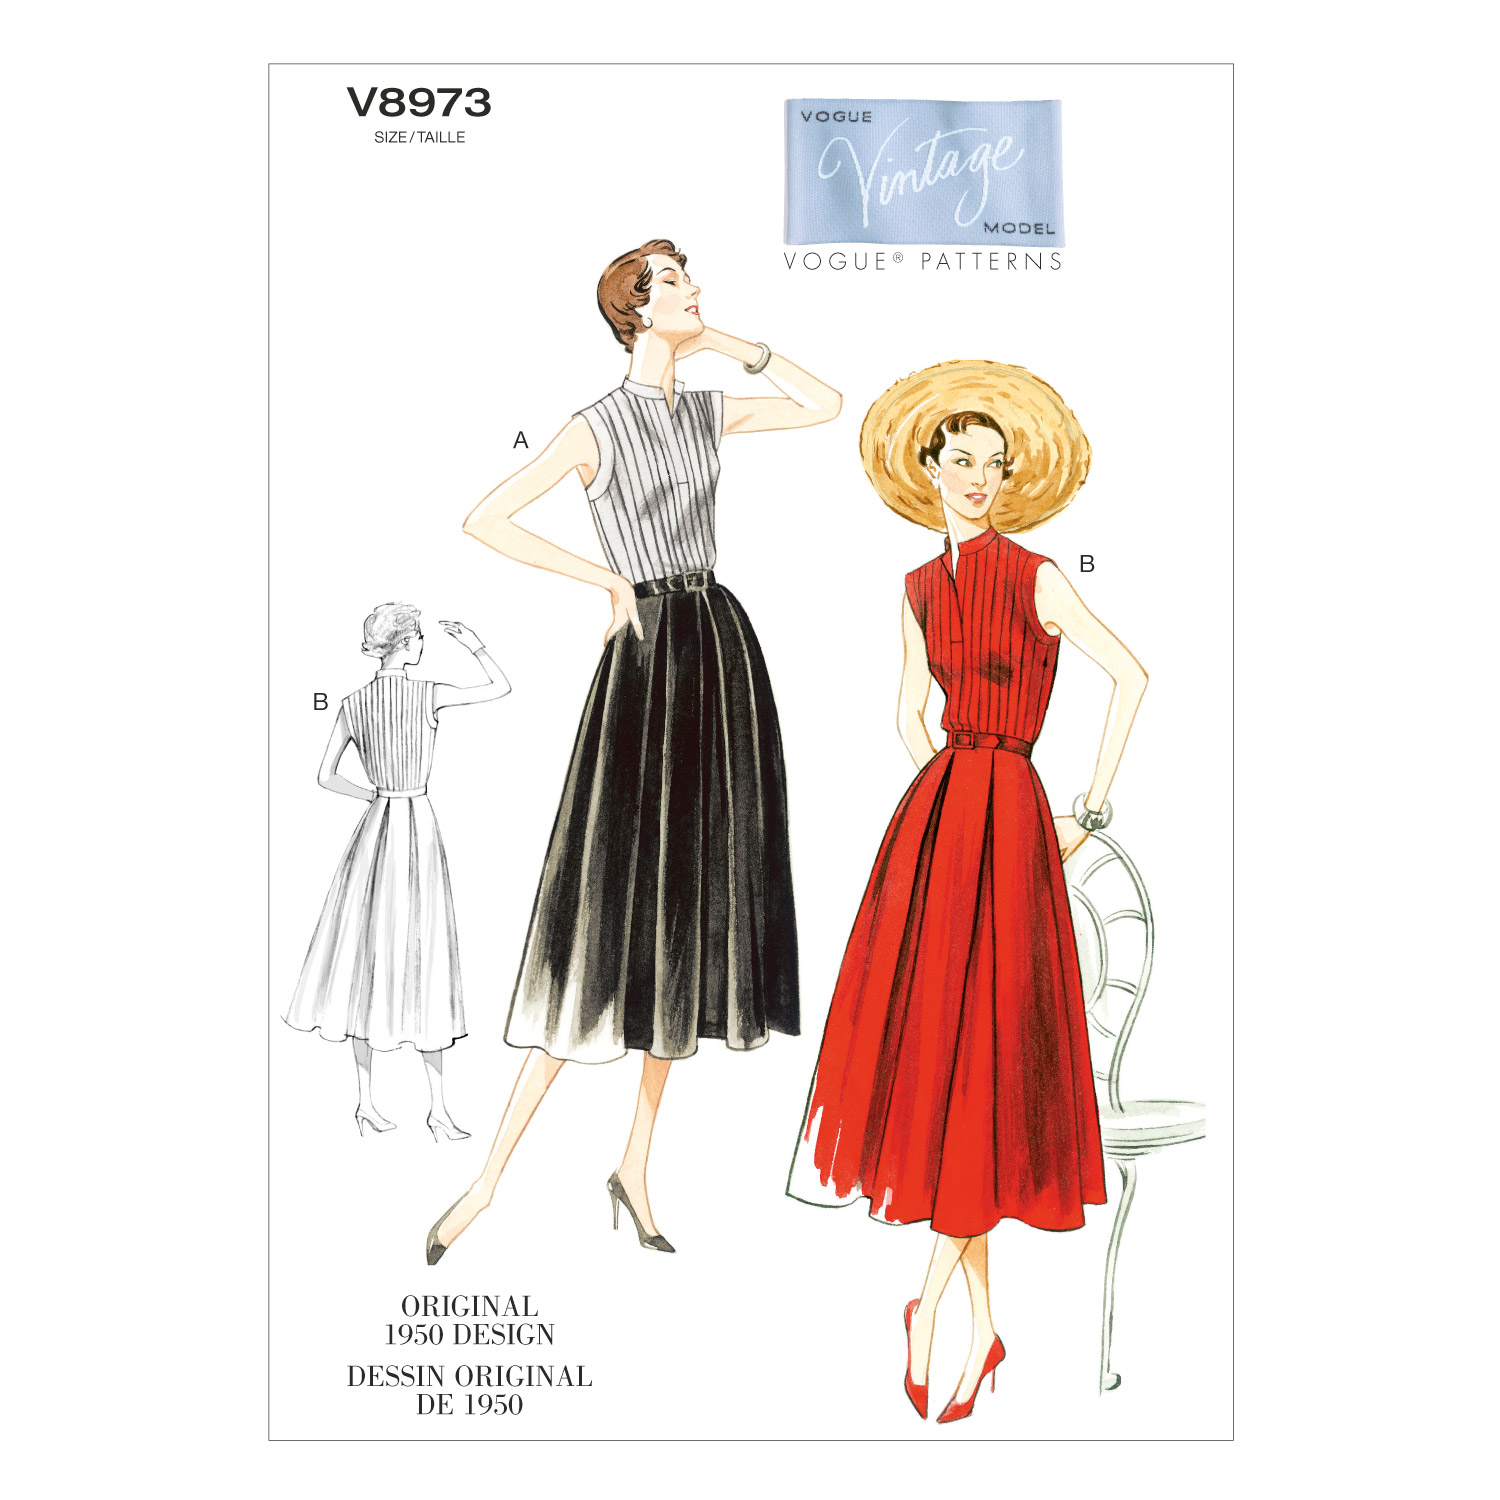 Vogue Patterns Misses Dress-V8973